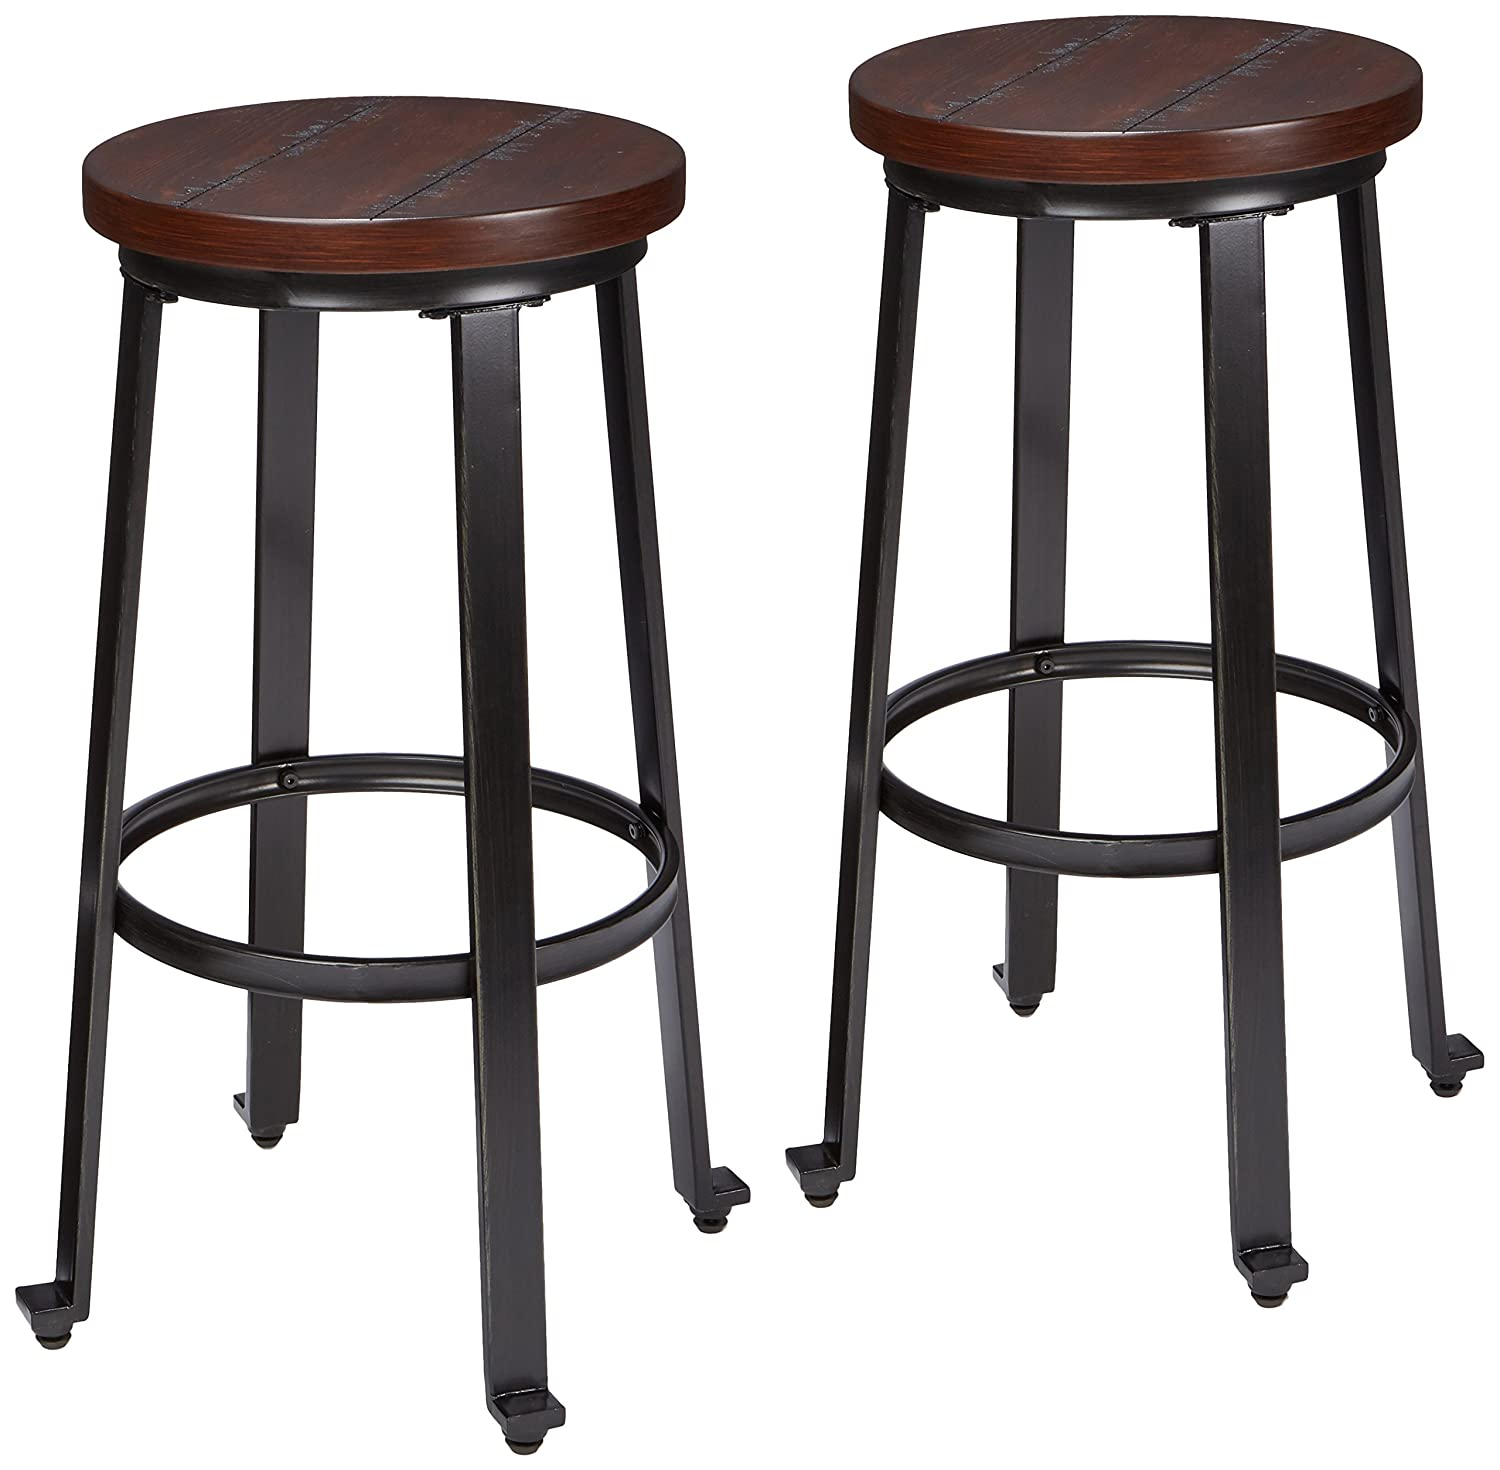 Ashley Furniture Signature Design   Challiman Bar Stool   Pub Height   Set  Of 2   Rustic Brown